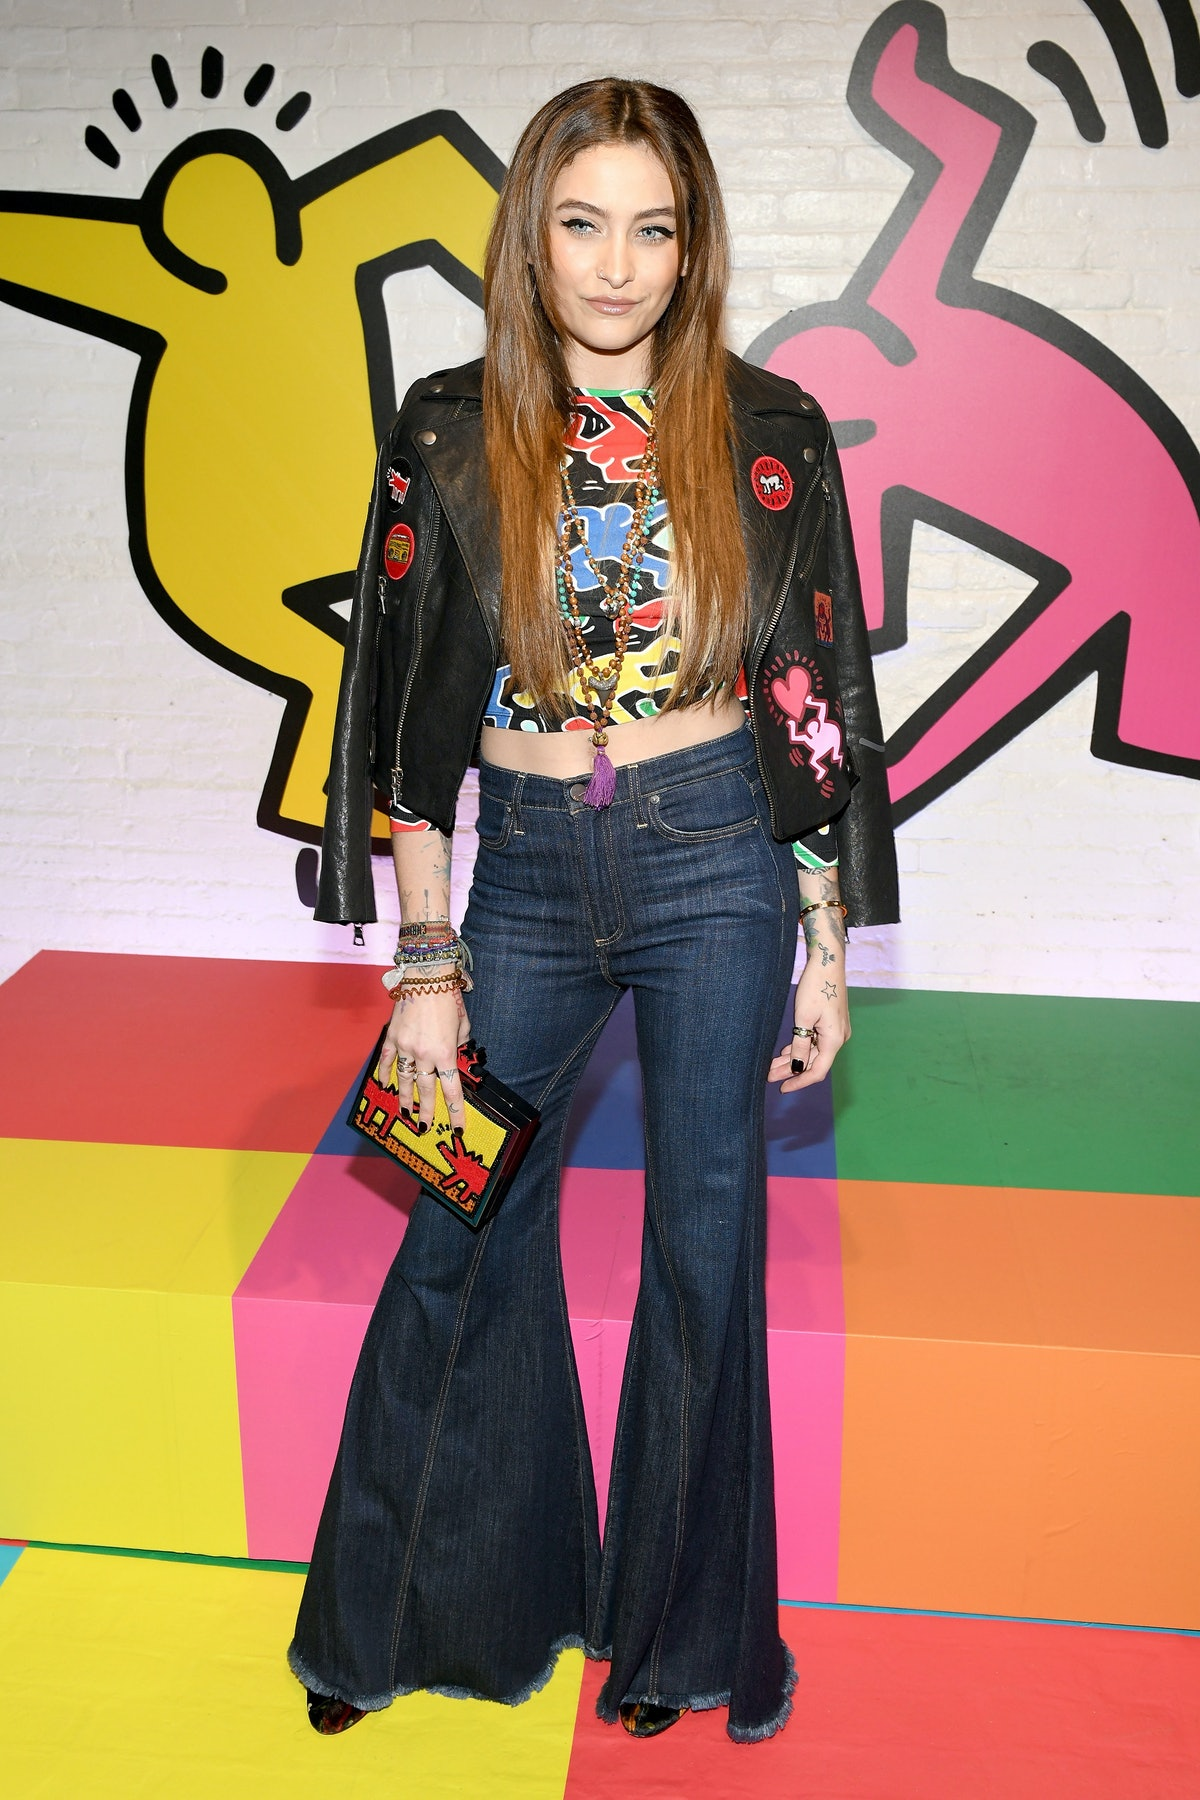 Stacey Bendet And Paris Jackson Celebrate The Launch Of Keith Haring x alice + olivia